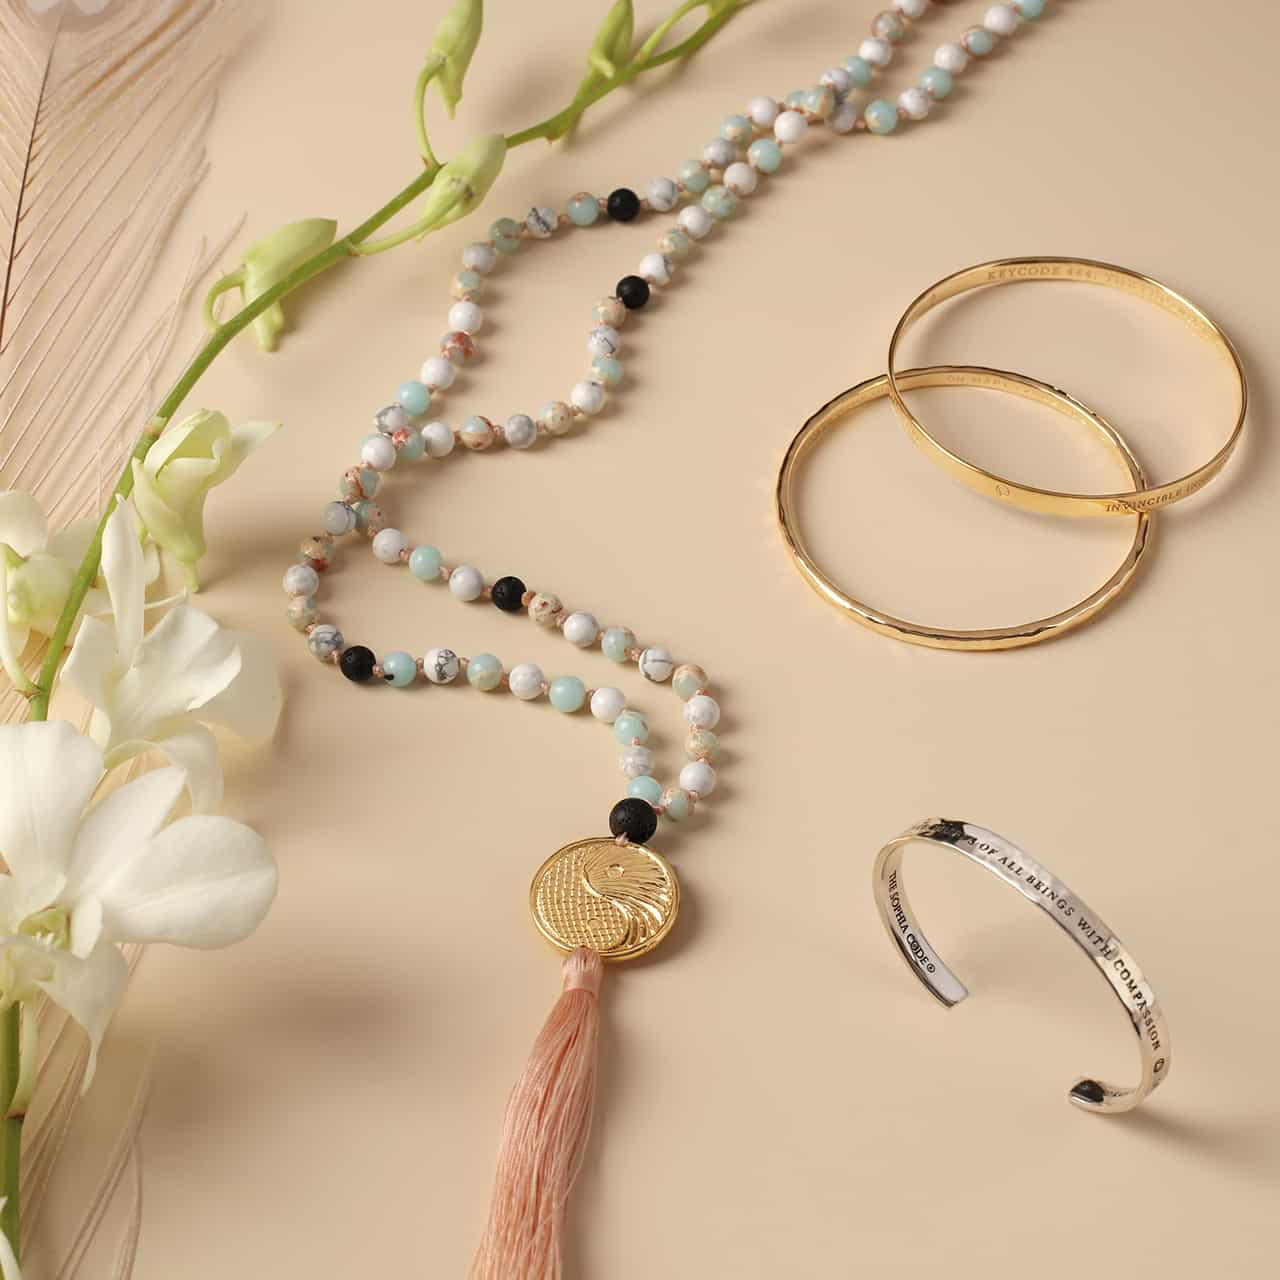 quan yin jewelry with flowers